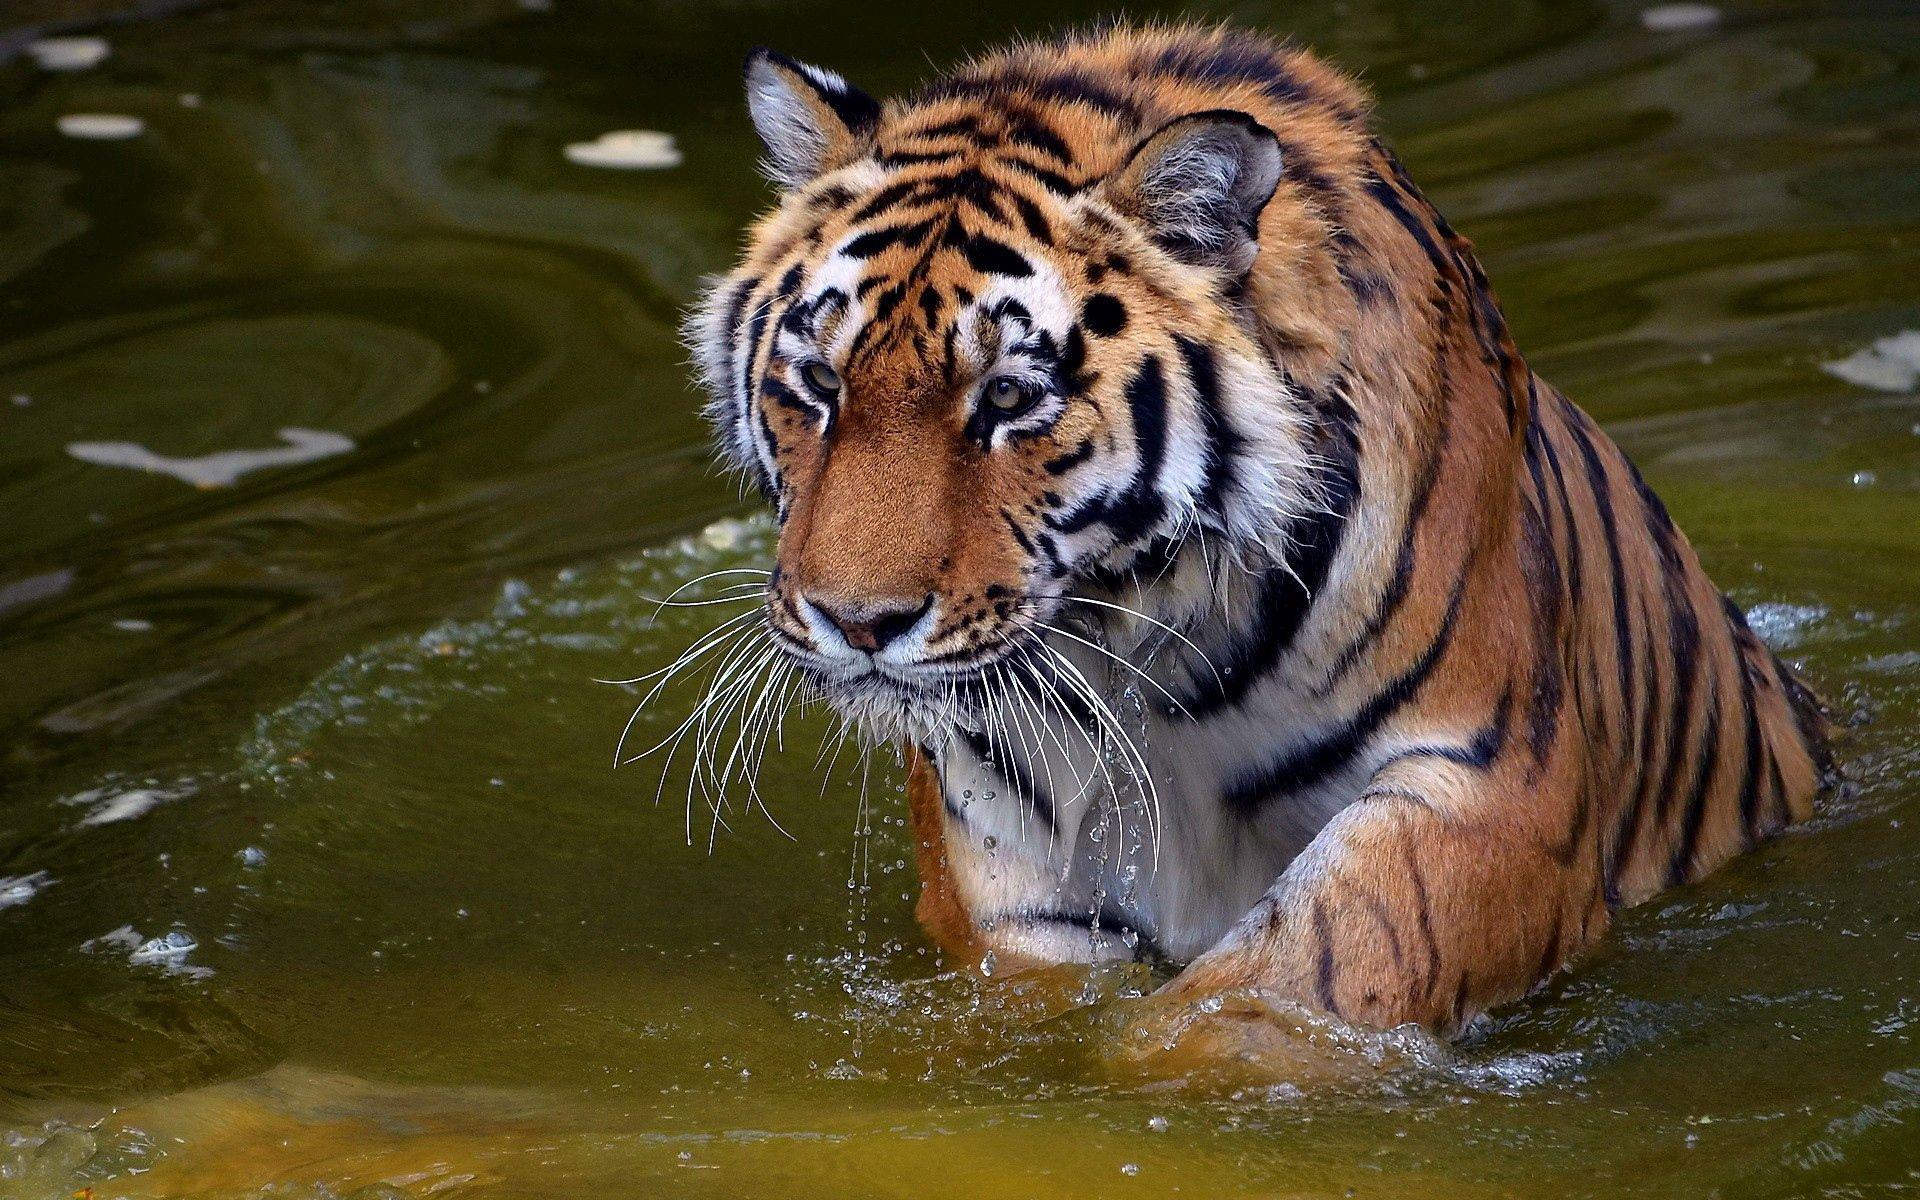 151364 download wallpaper Animals, Tiger, To Swim, Swim, Water, Rivers, Stroll, Big Cat screensavers and pictures for free